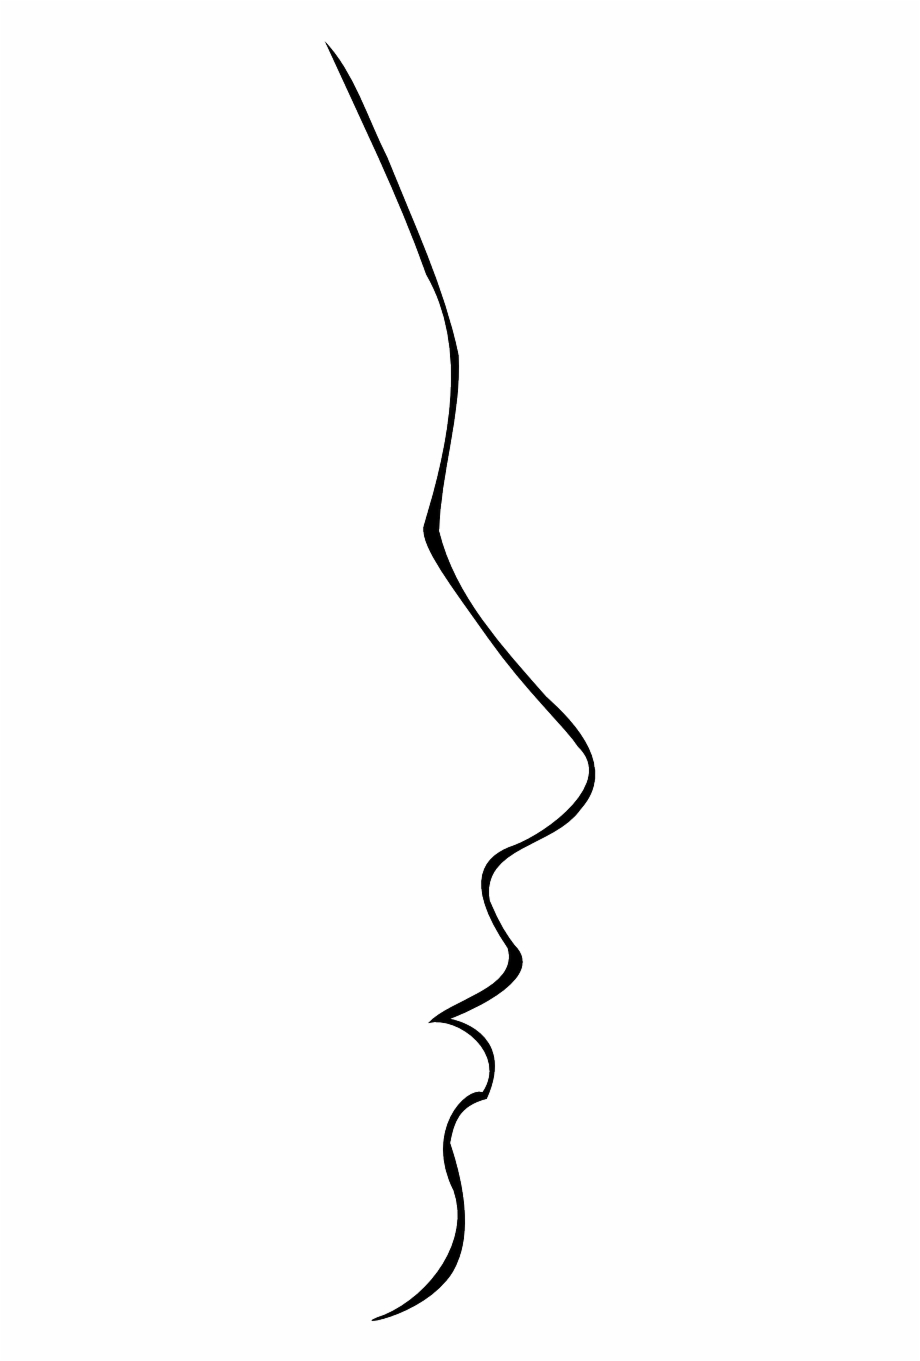 920x1361 Face Head Profile Silhouette Png Image